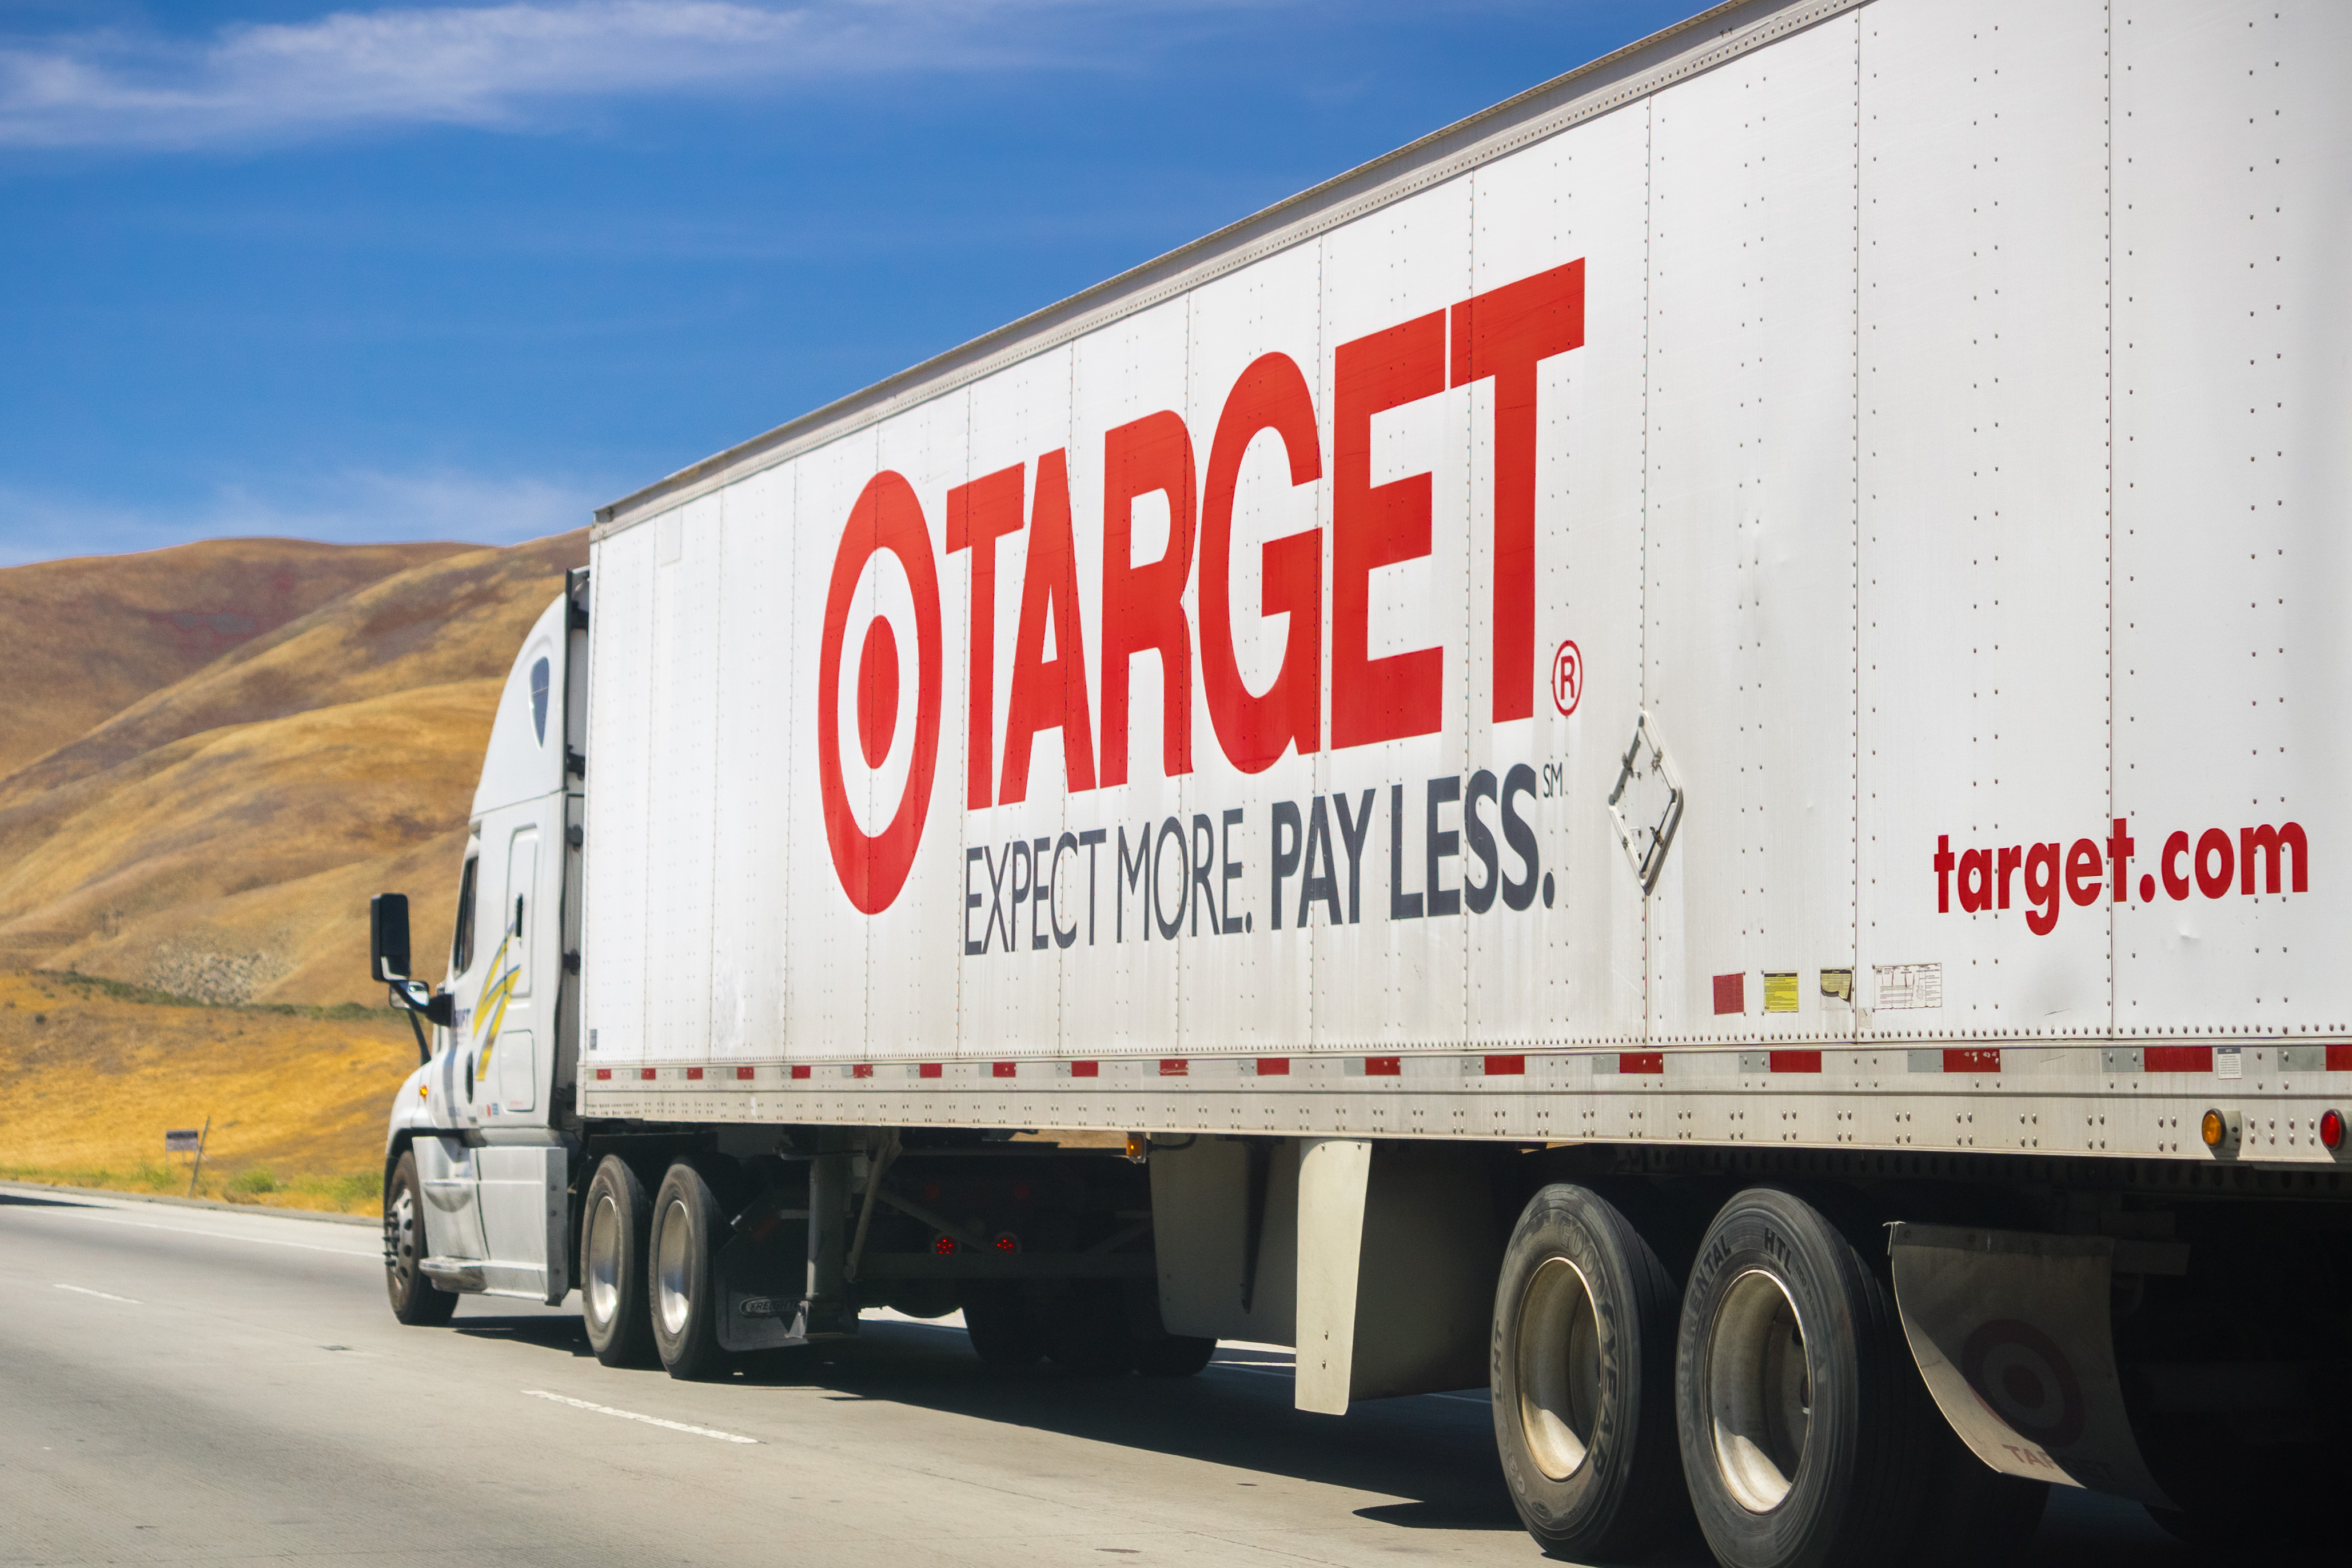 Target and Walmart building inventories for different reasons